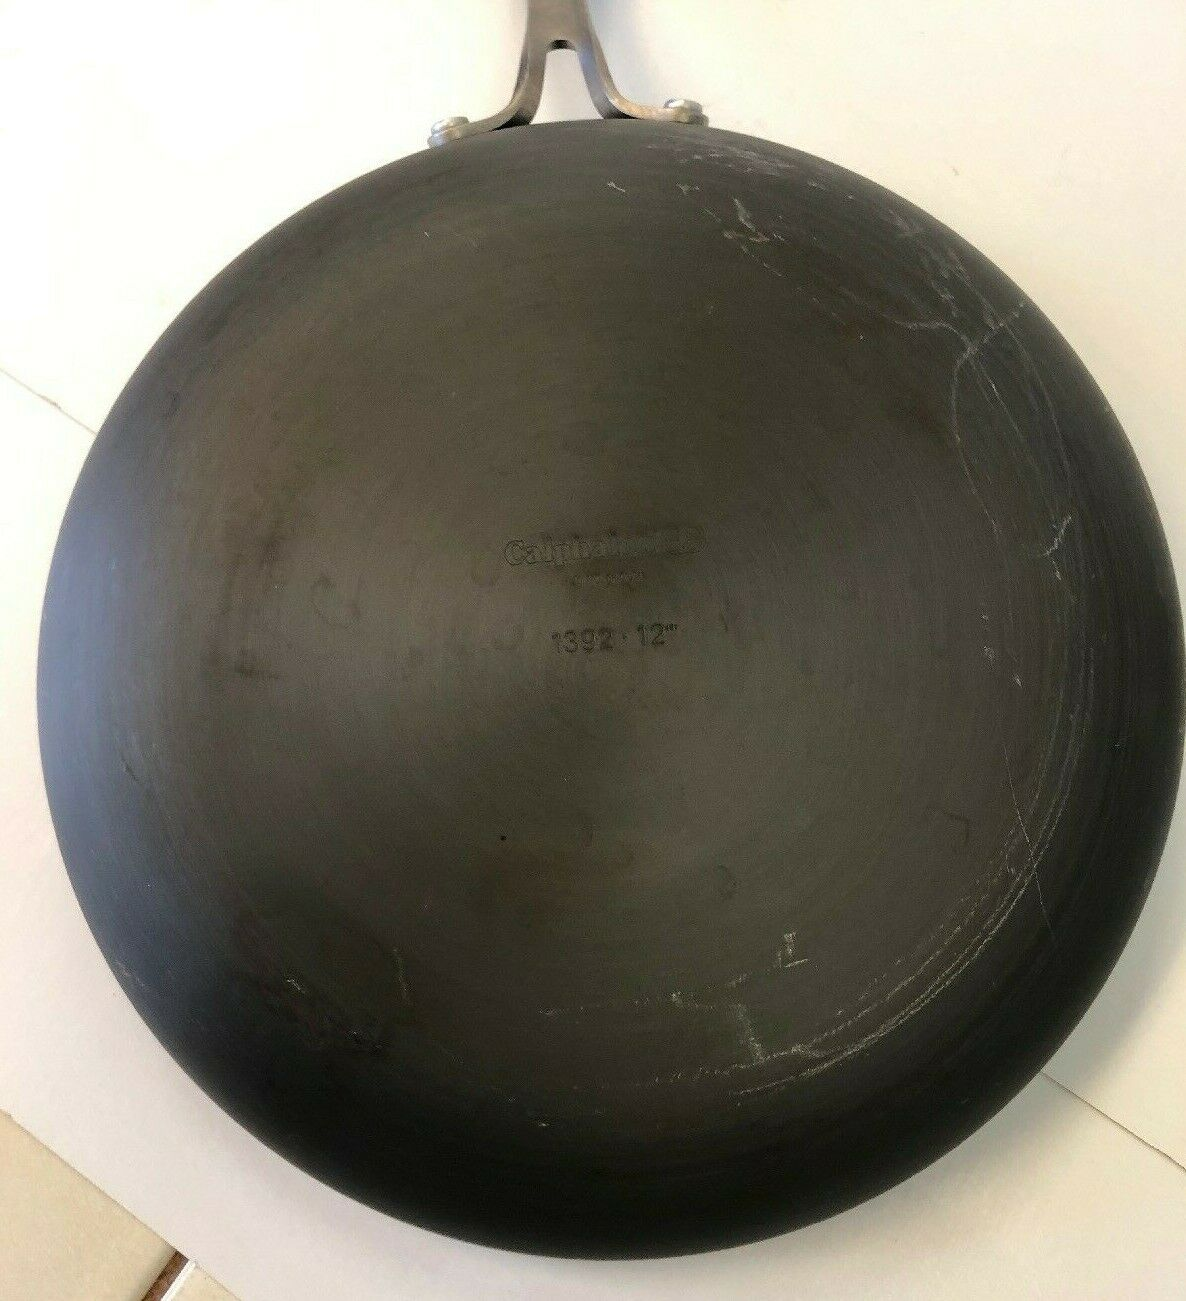 """Preowned 12"""" Frying Frying Frying Pan Cooking With Calphalon with Cover  1392 Skillet Fry 75ff46"""